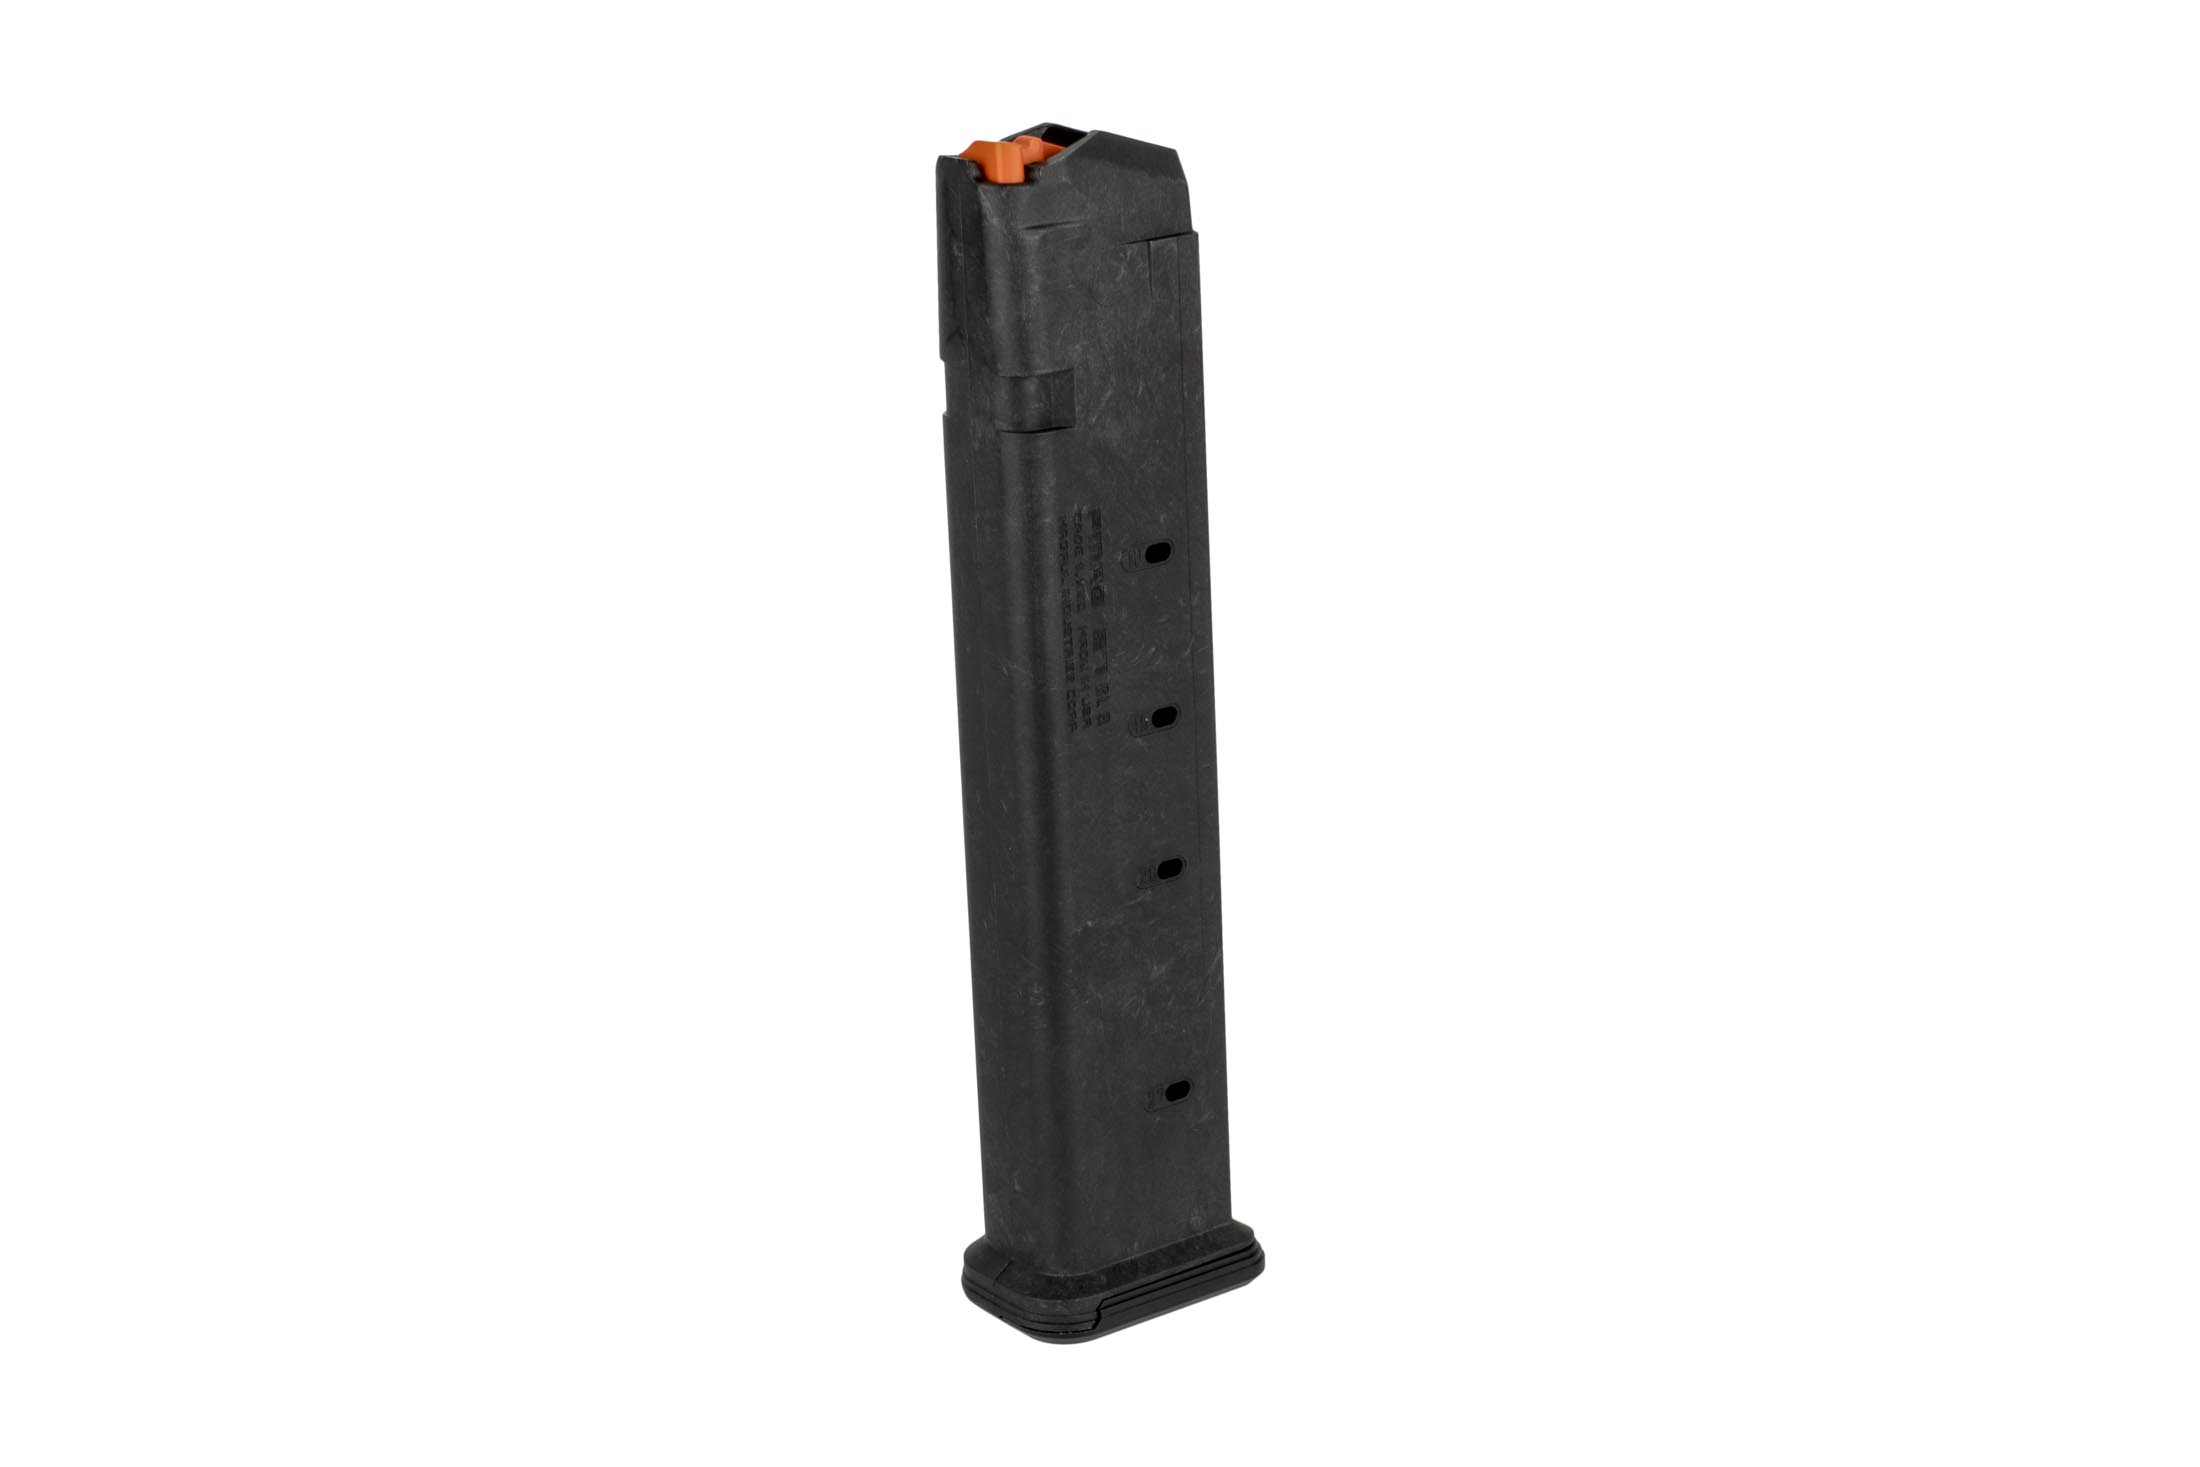 The Magpul PMAG 27 GL9 Glock magazine is made from a durable polymer